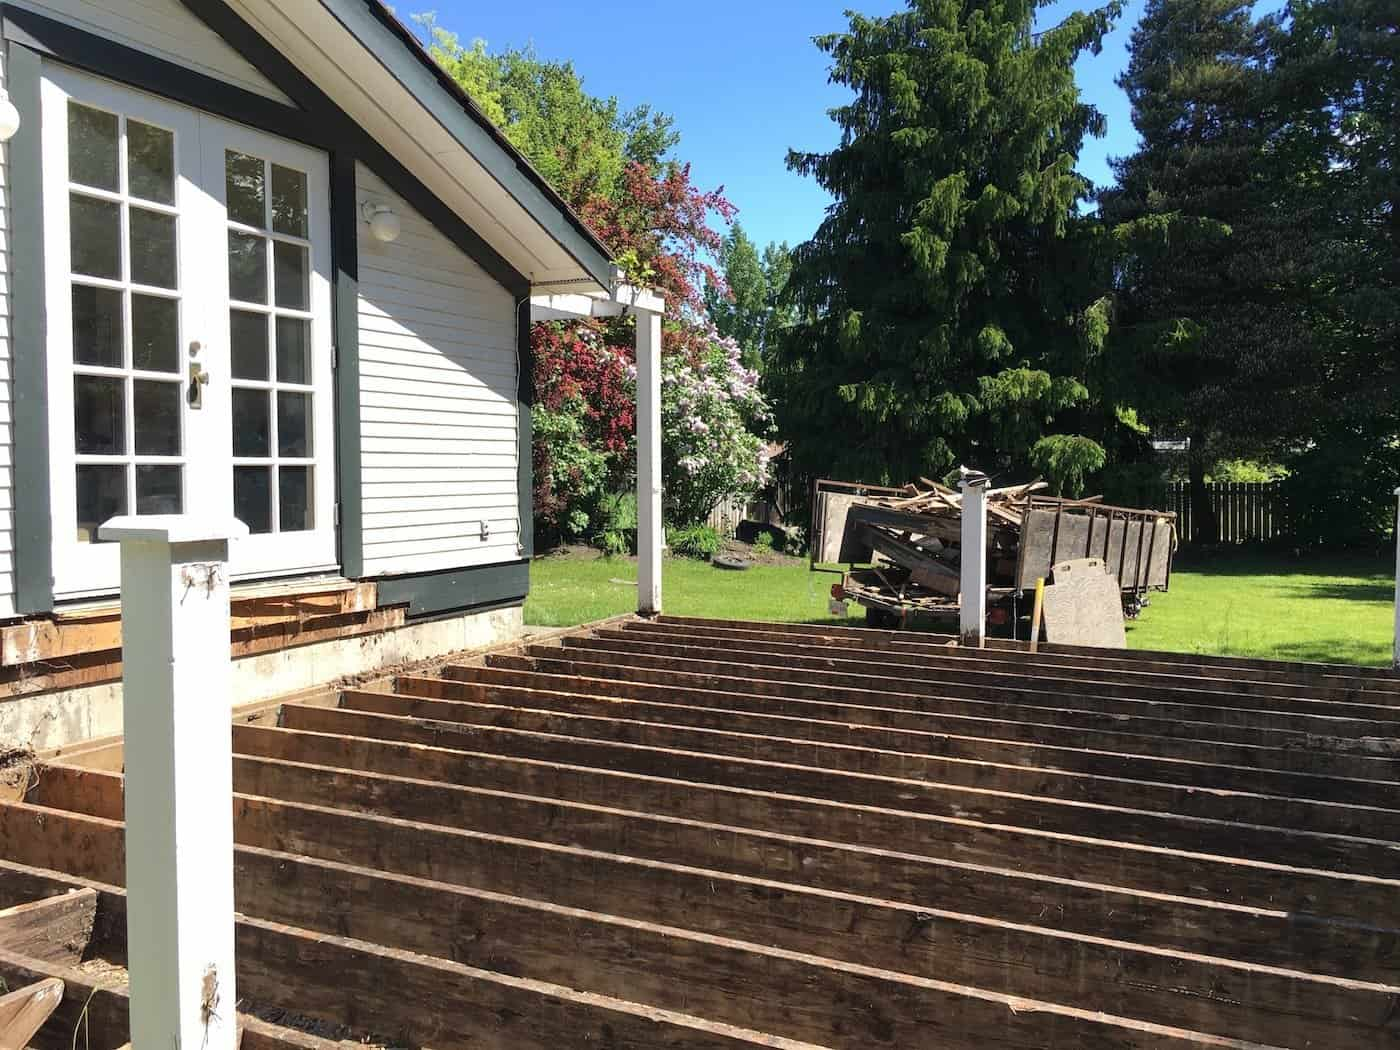 It's finished! This DIY deck project took us a few weekends this summer. We laid new cedar decking to update our old deck. #newdeck #DIYdeck #deckproject #cedardecking